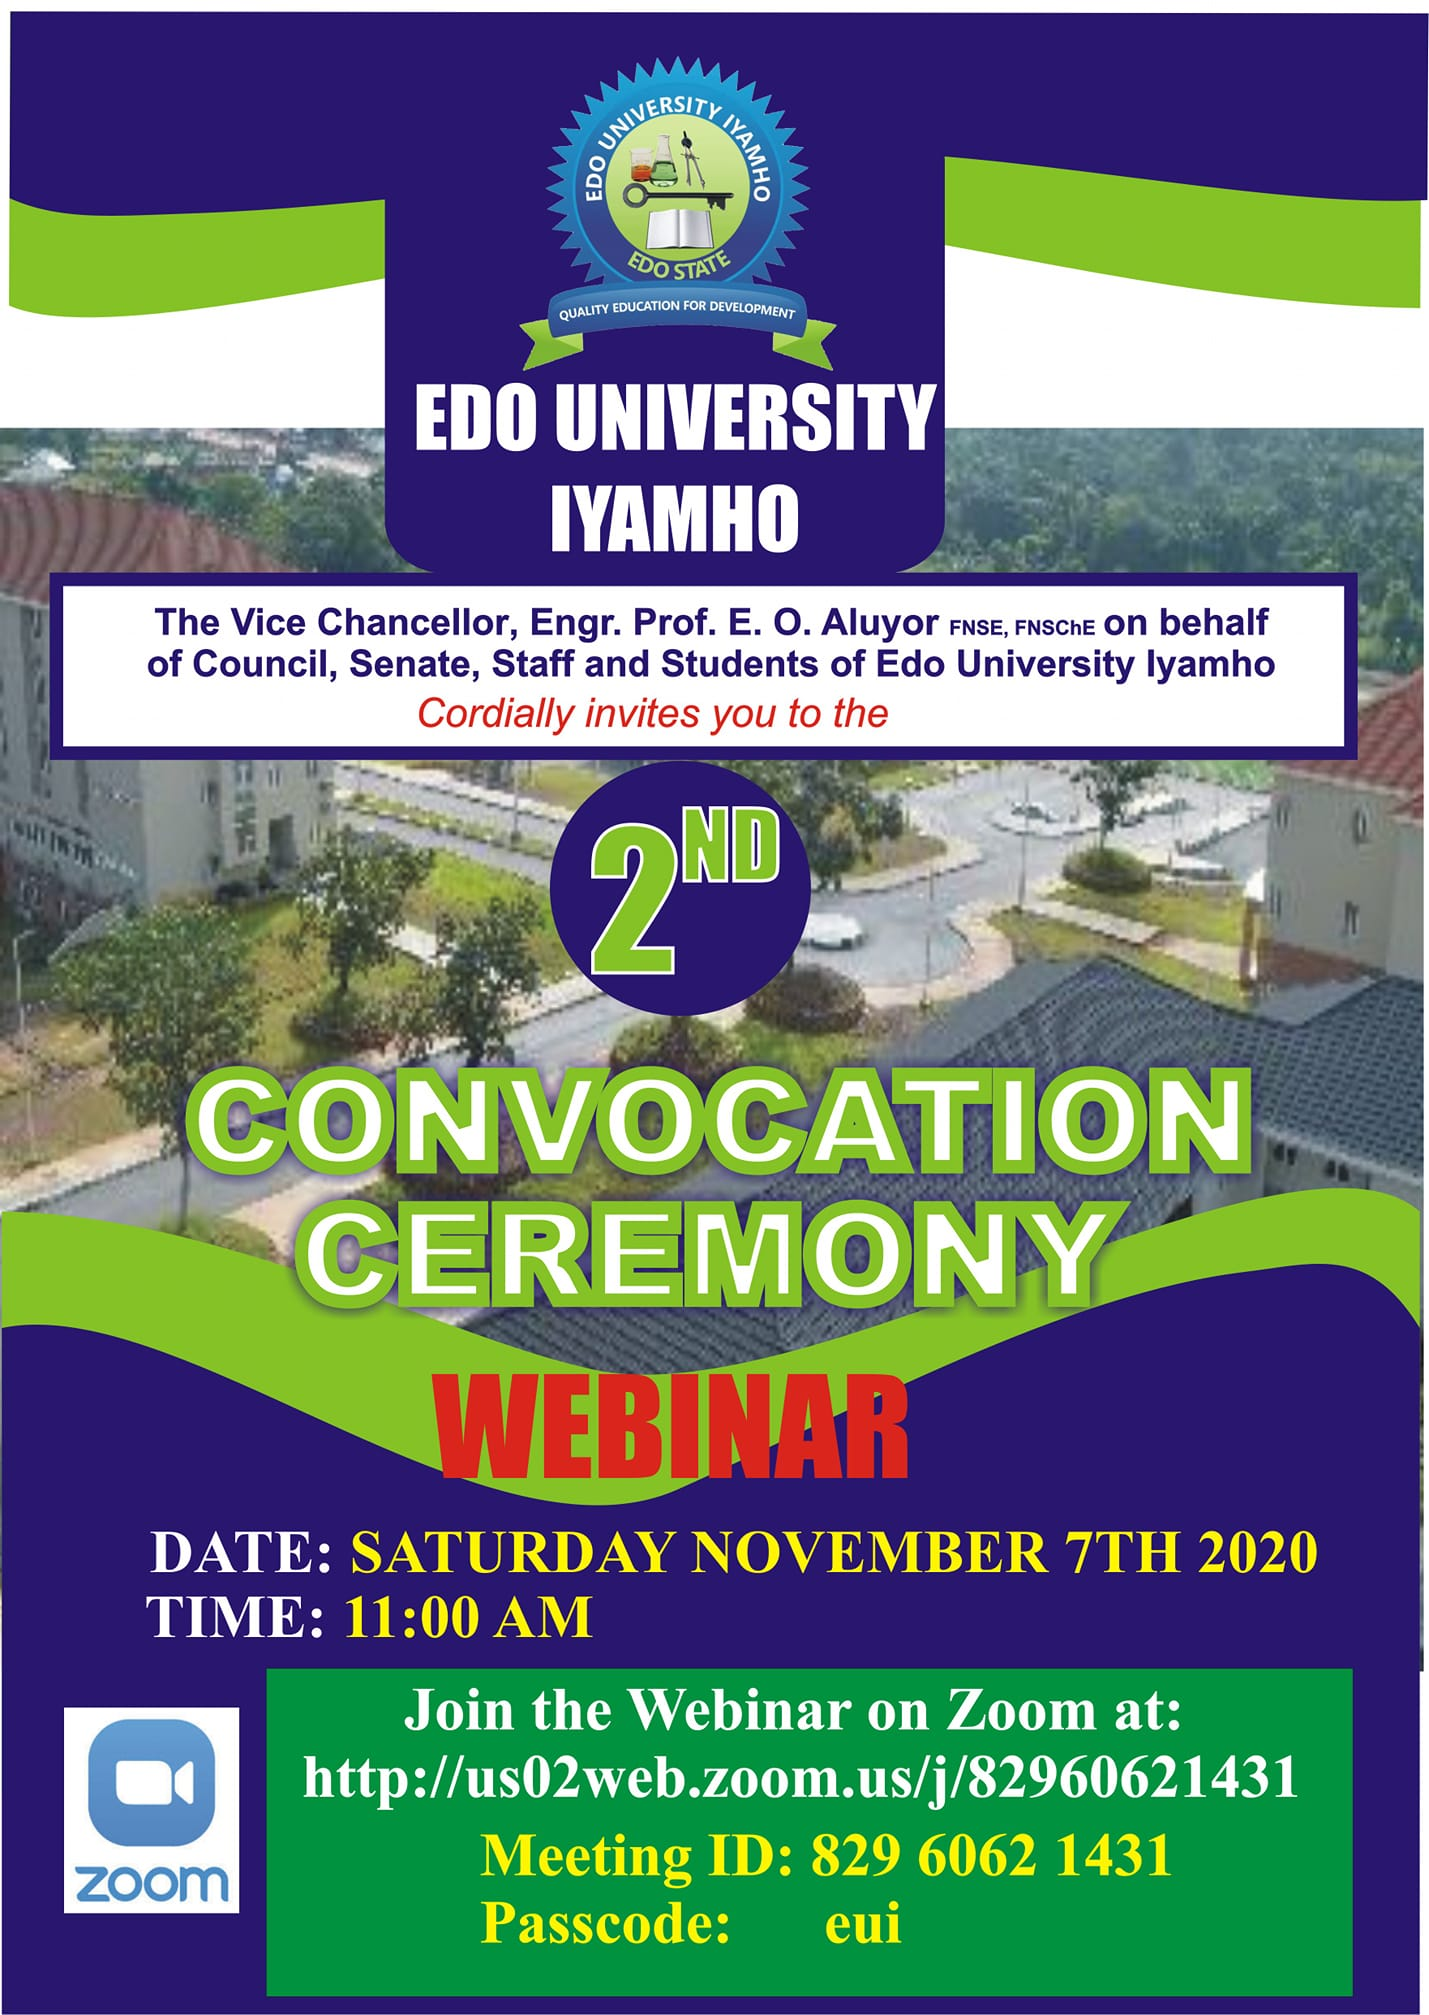 Edo University Convocation Ceremony